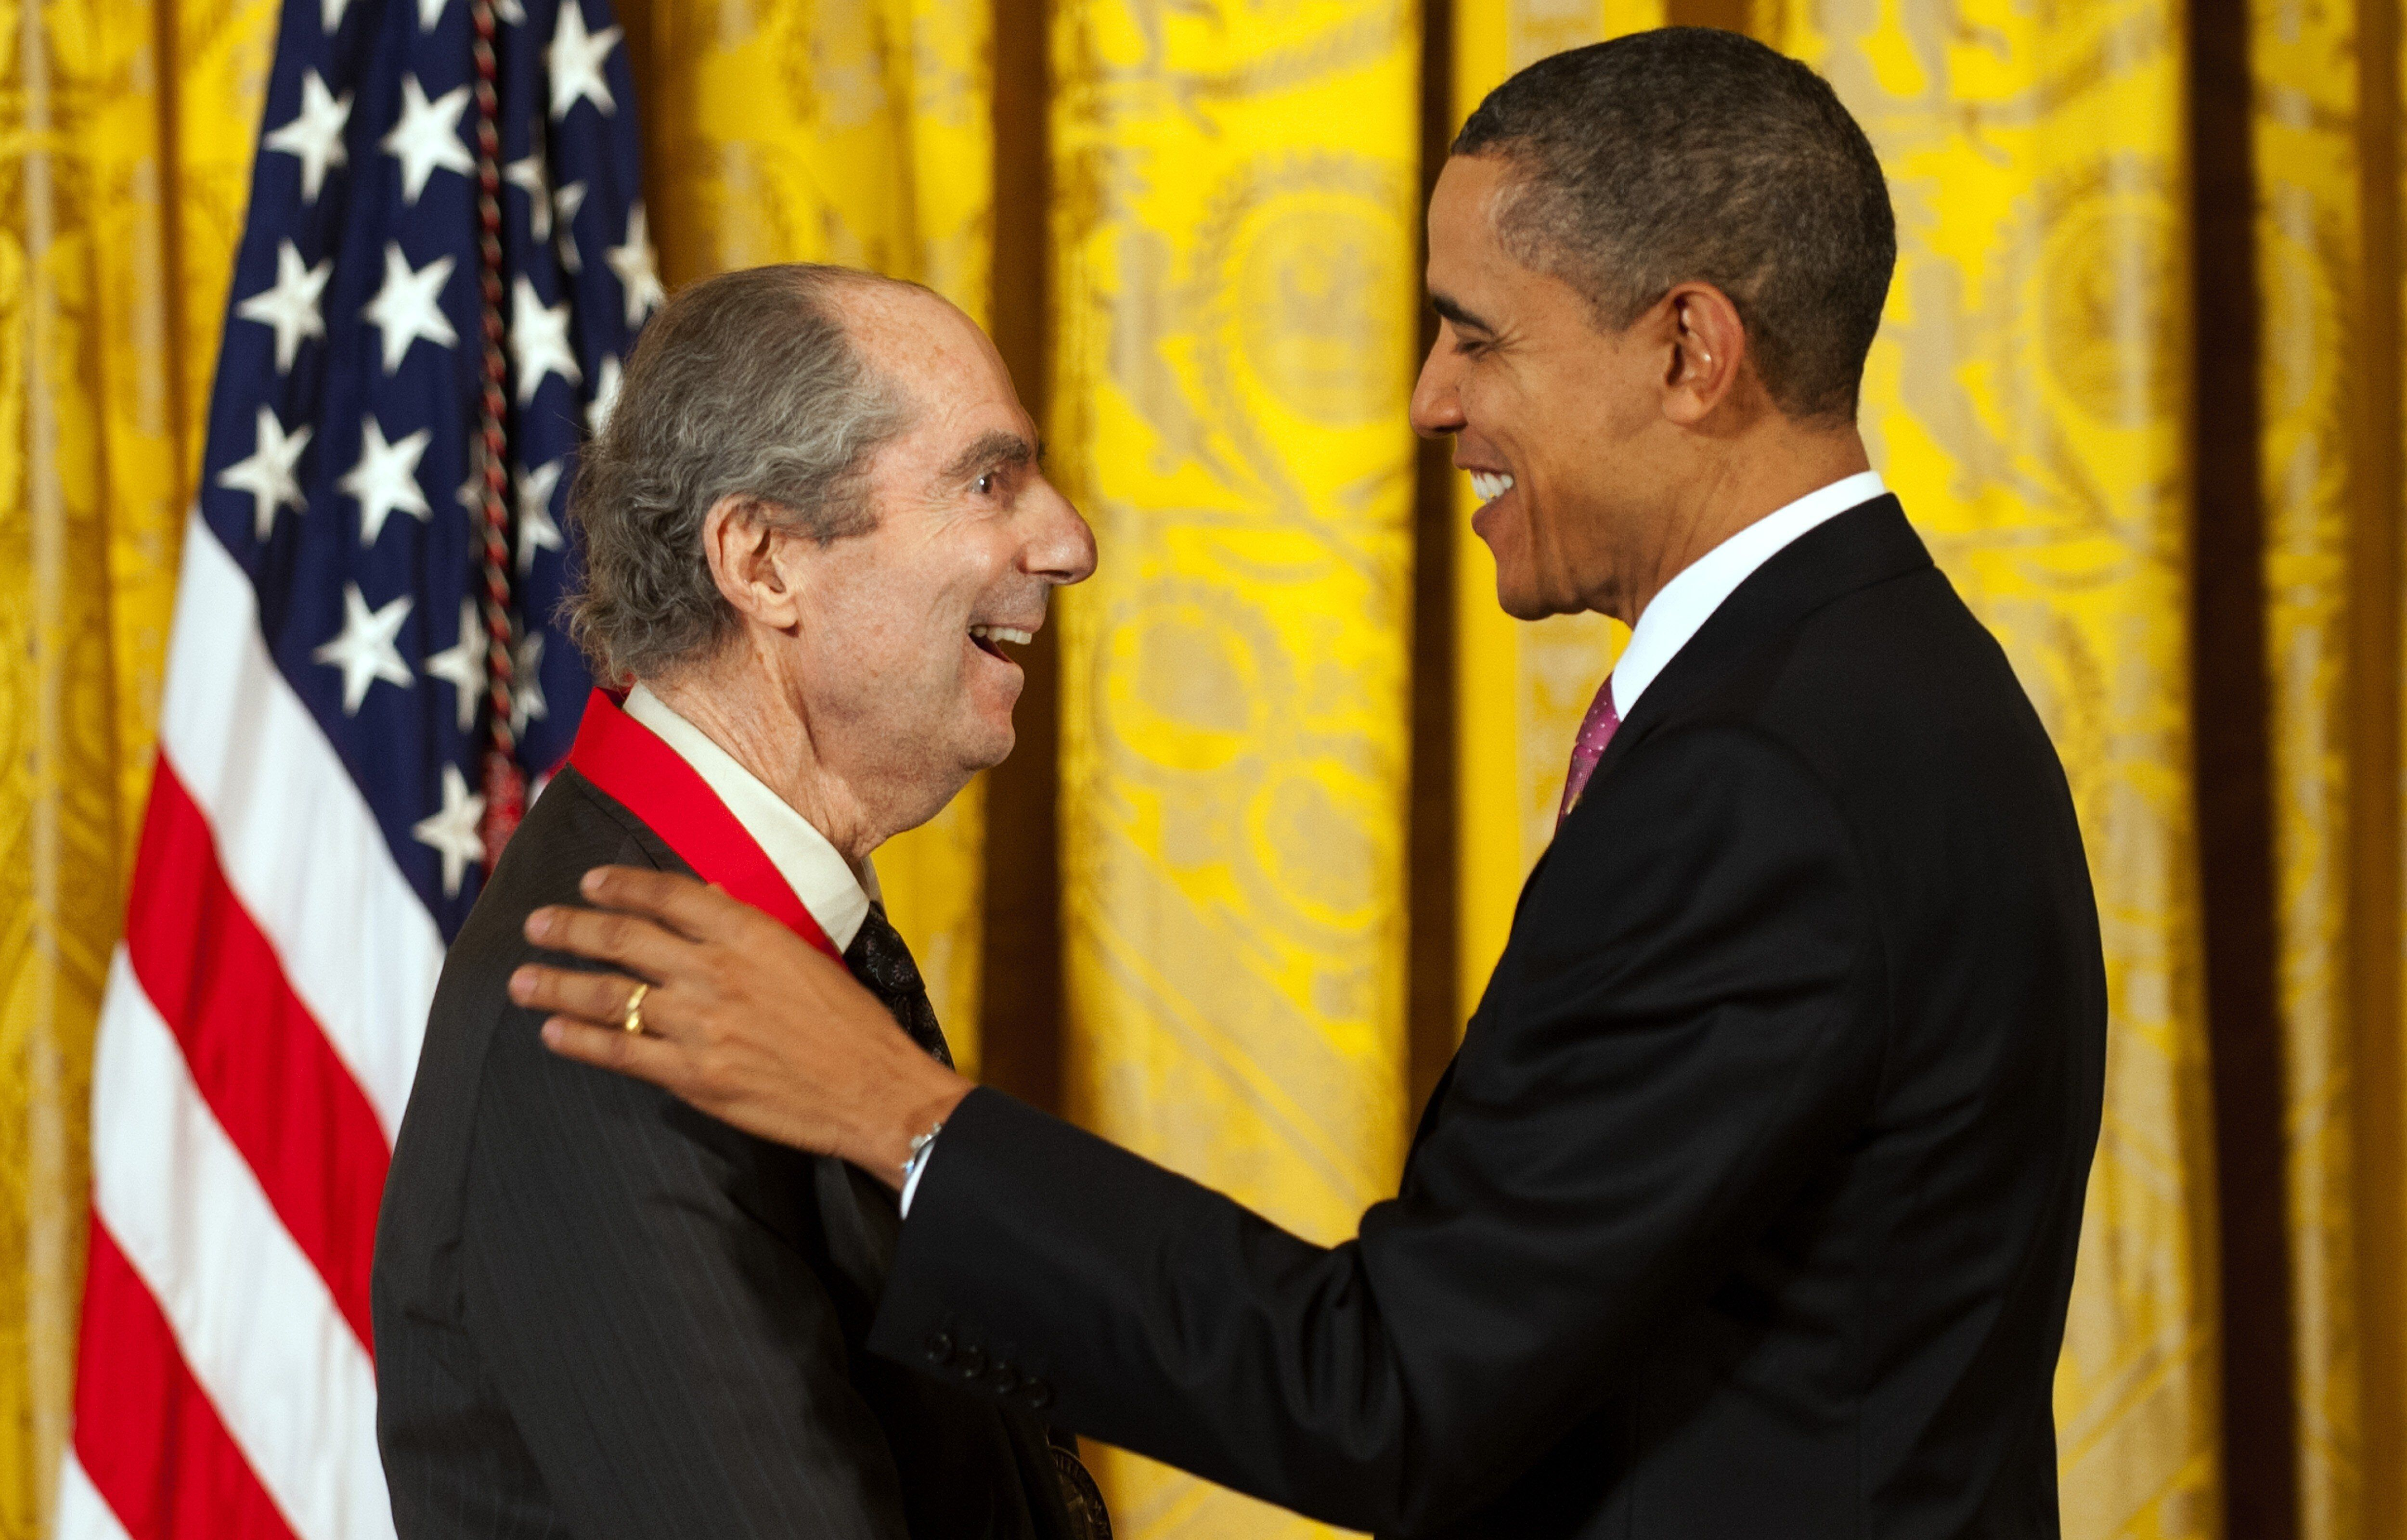 President Barack Obama presents the National Humanities Medal to novelist Philip Roth in 2011.